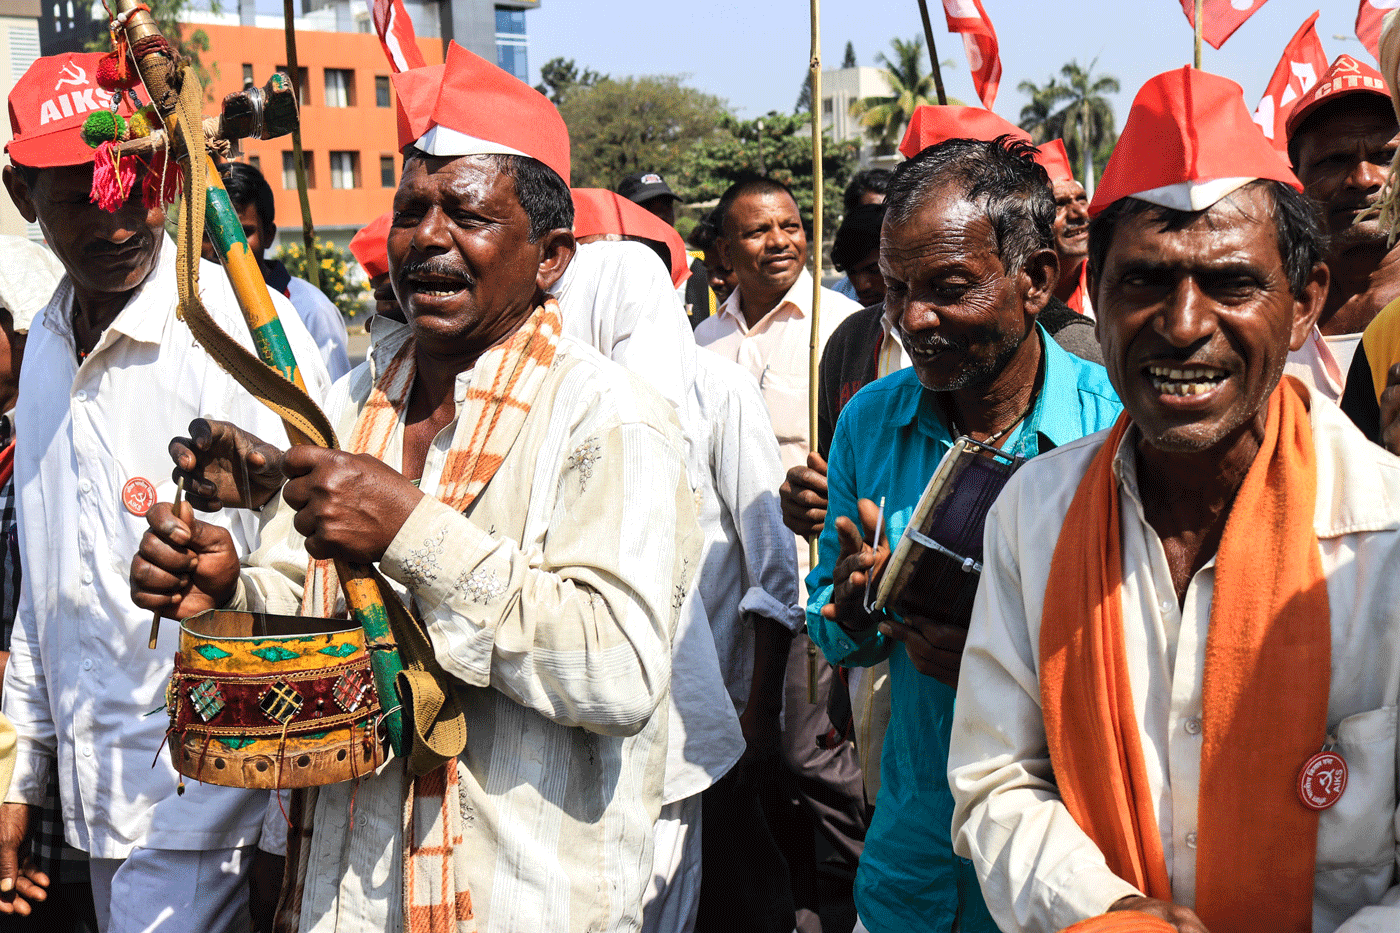 Gavit and Chavan, along with other farmers from Dindori taluka, are singing songs in praise of the farmers' protest